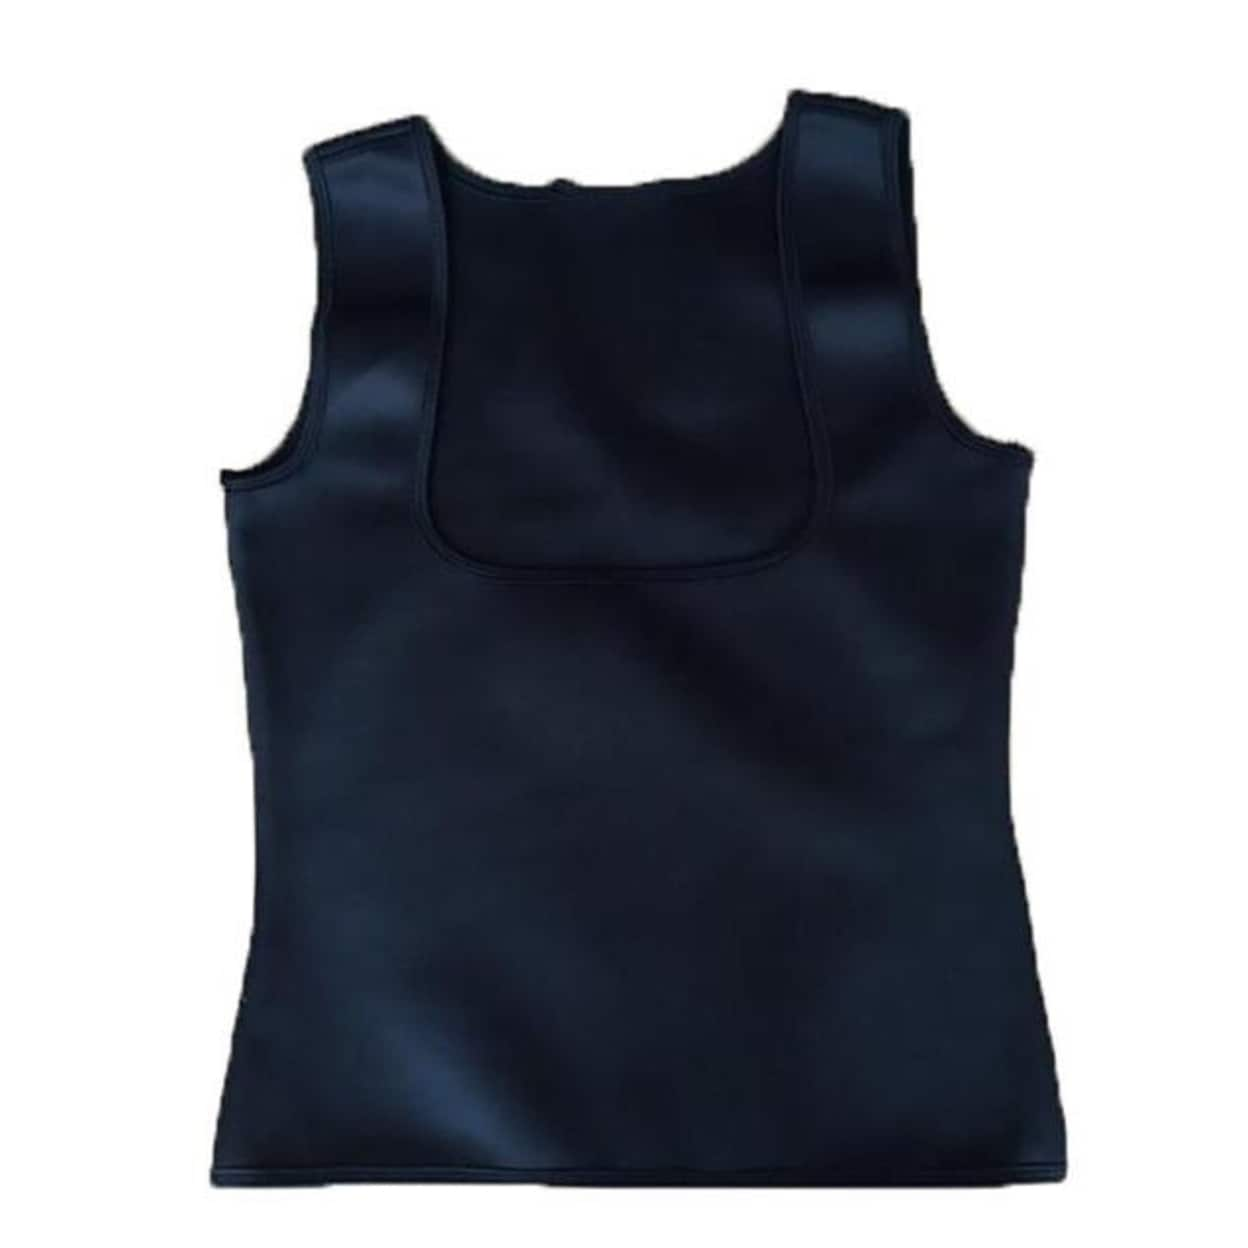 ba8c557e3b Shop STYLEDOME Neoprene Hot Shapers Vest Body Shaper Waist Trainers - Free  Shipping On Orders Over  45 - Overstock - 23025060